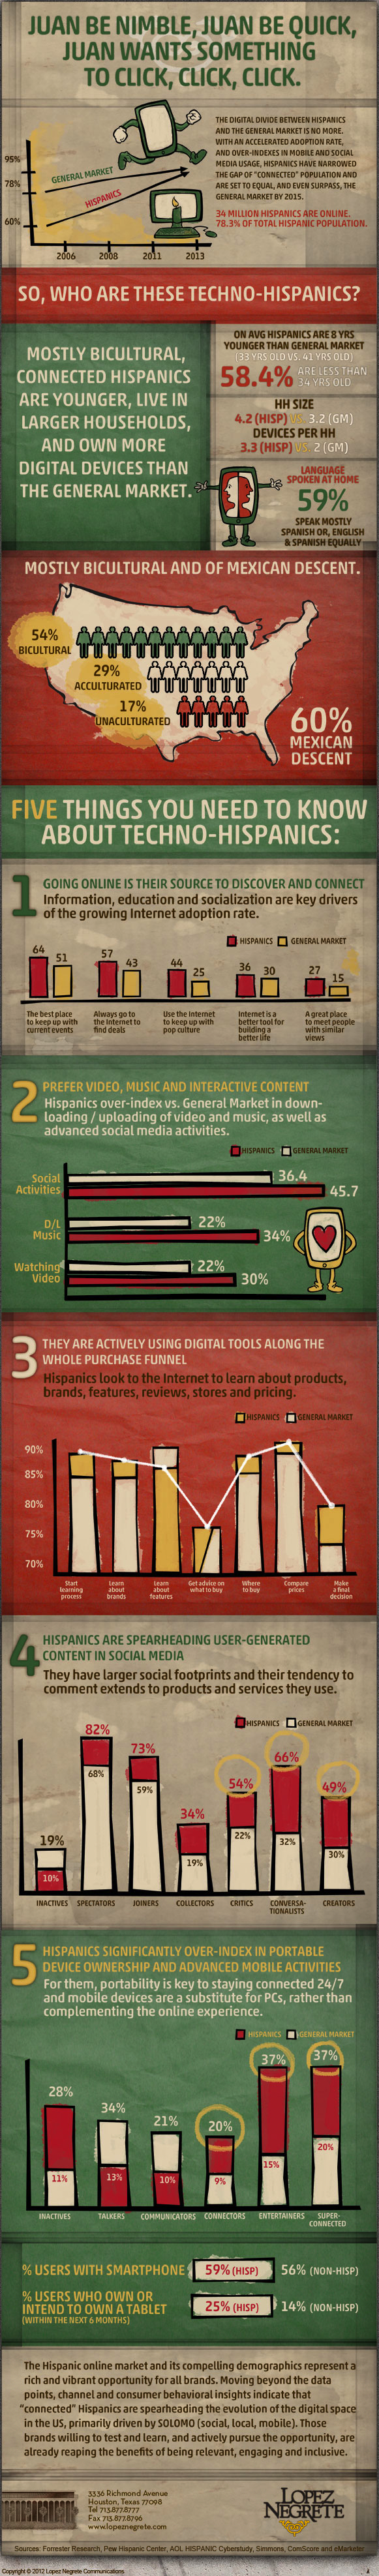 Latinos are vital to your brand and highly engaged. Digital pioneers. #Latinos